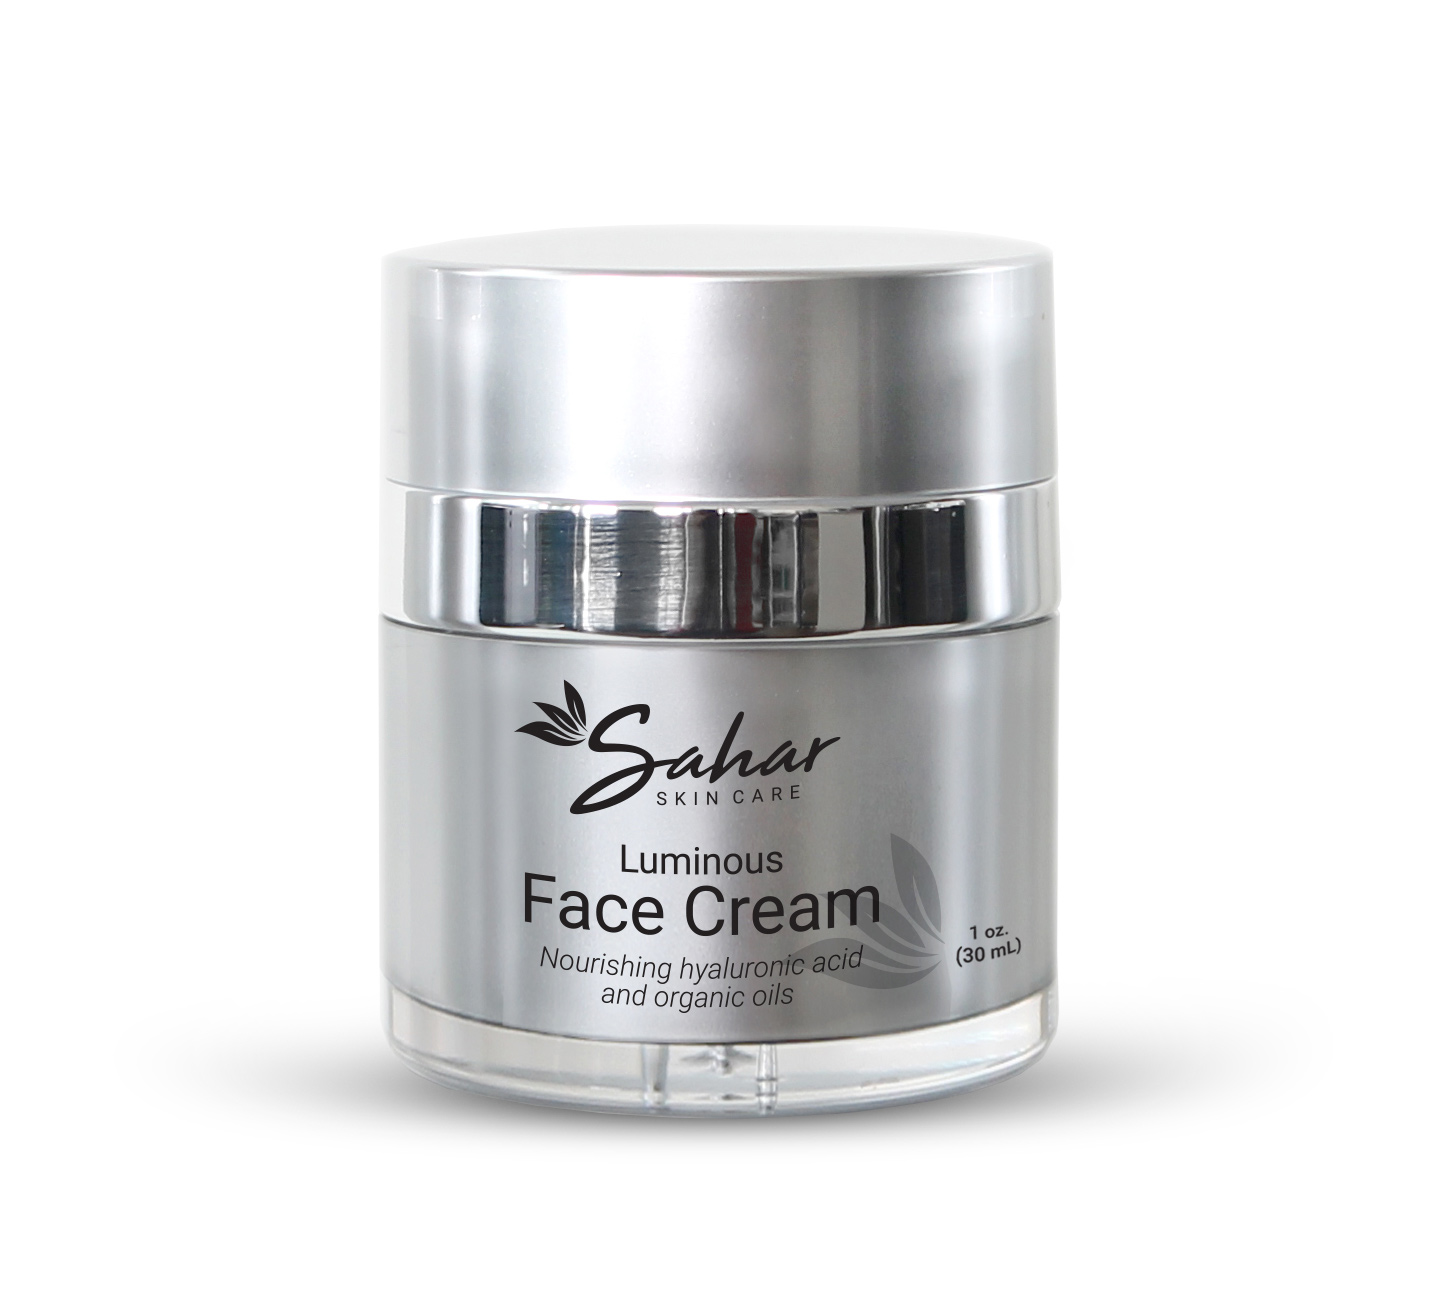 Sahar's Skin Care Luminous Face Cream